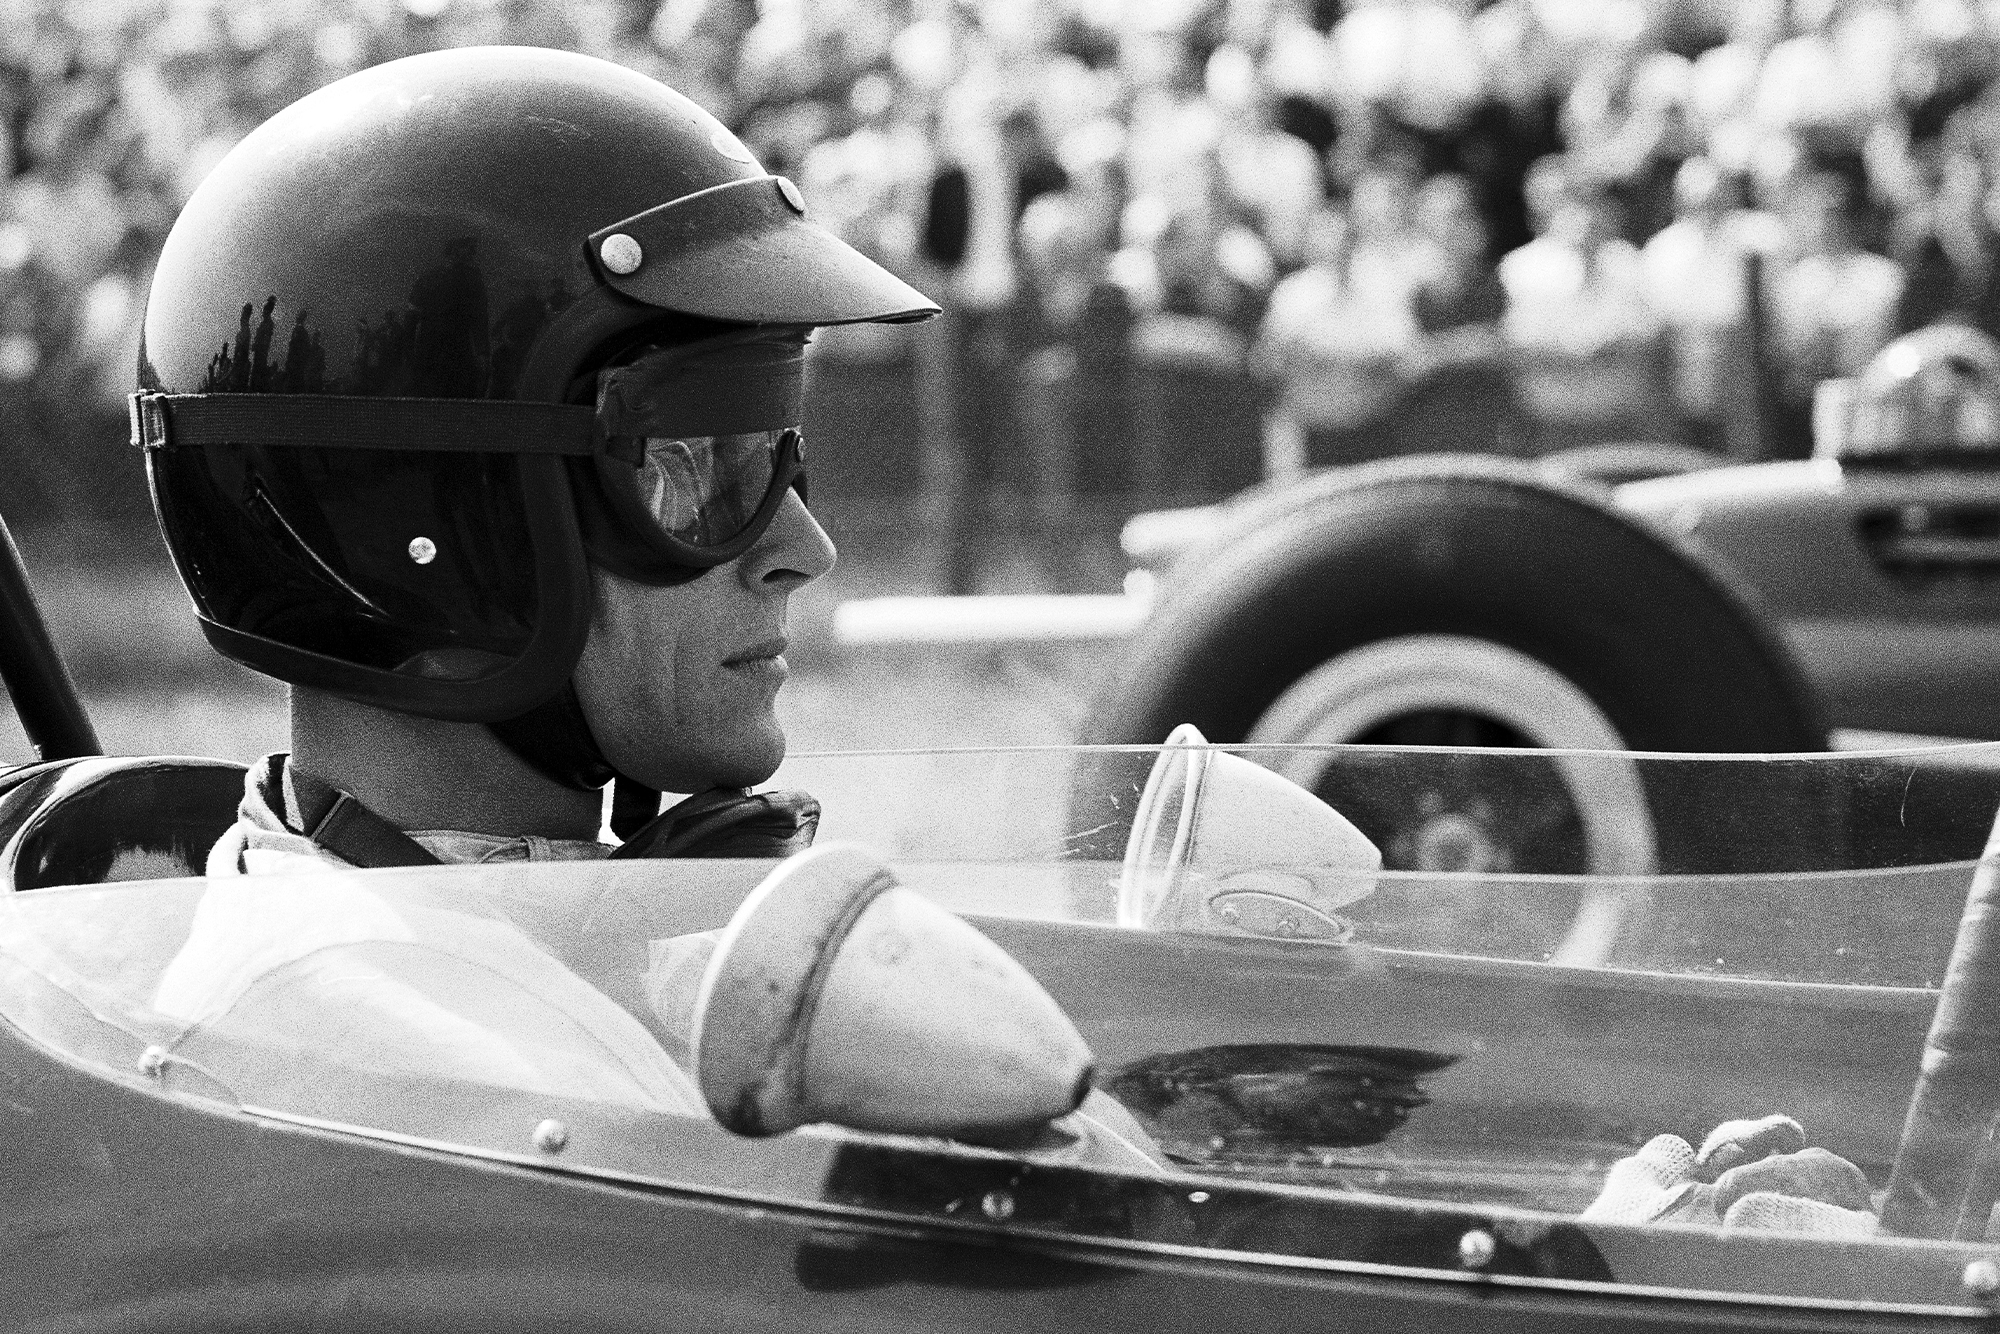 Dan Gurney awaits the start of the race in his Brabham